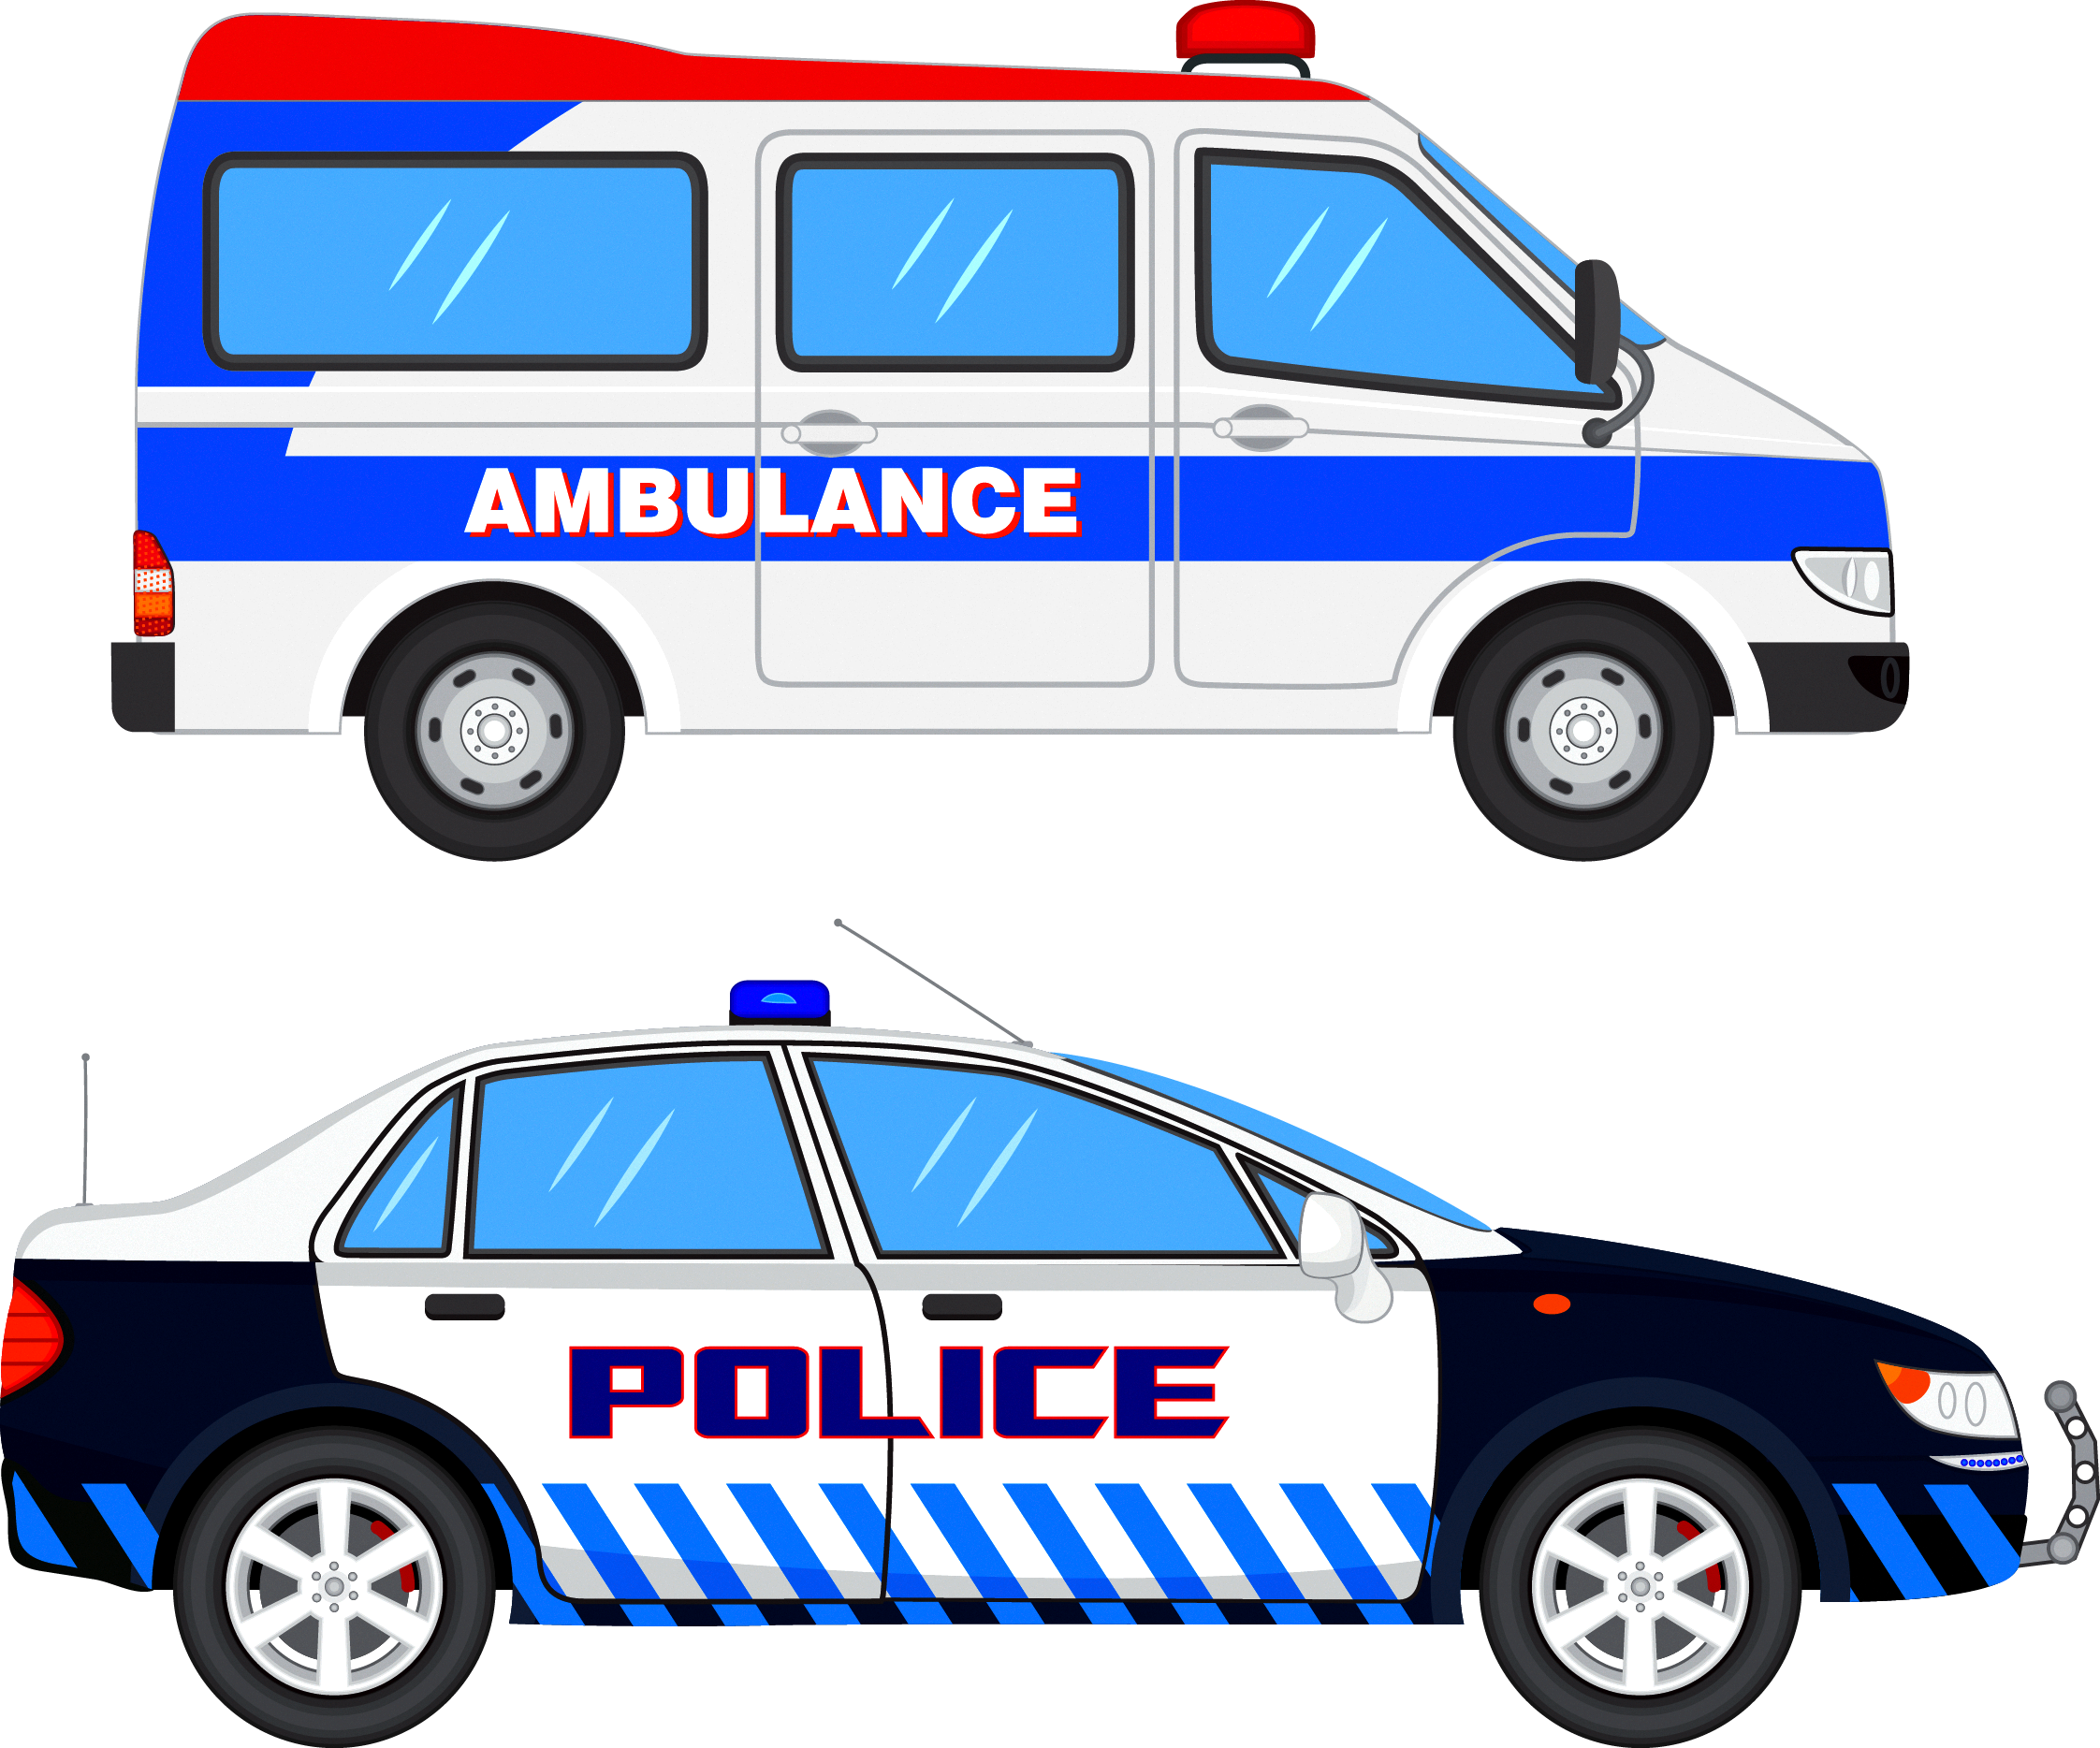 Car parts clipart jpg royalty free download Police car Clip art - Ambulance police car 2244*1868 transprent Png ... jpg royalty free download